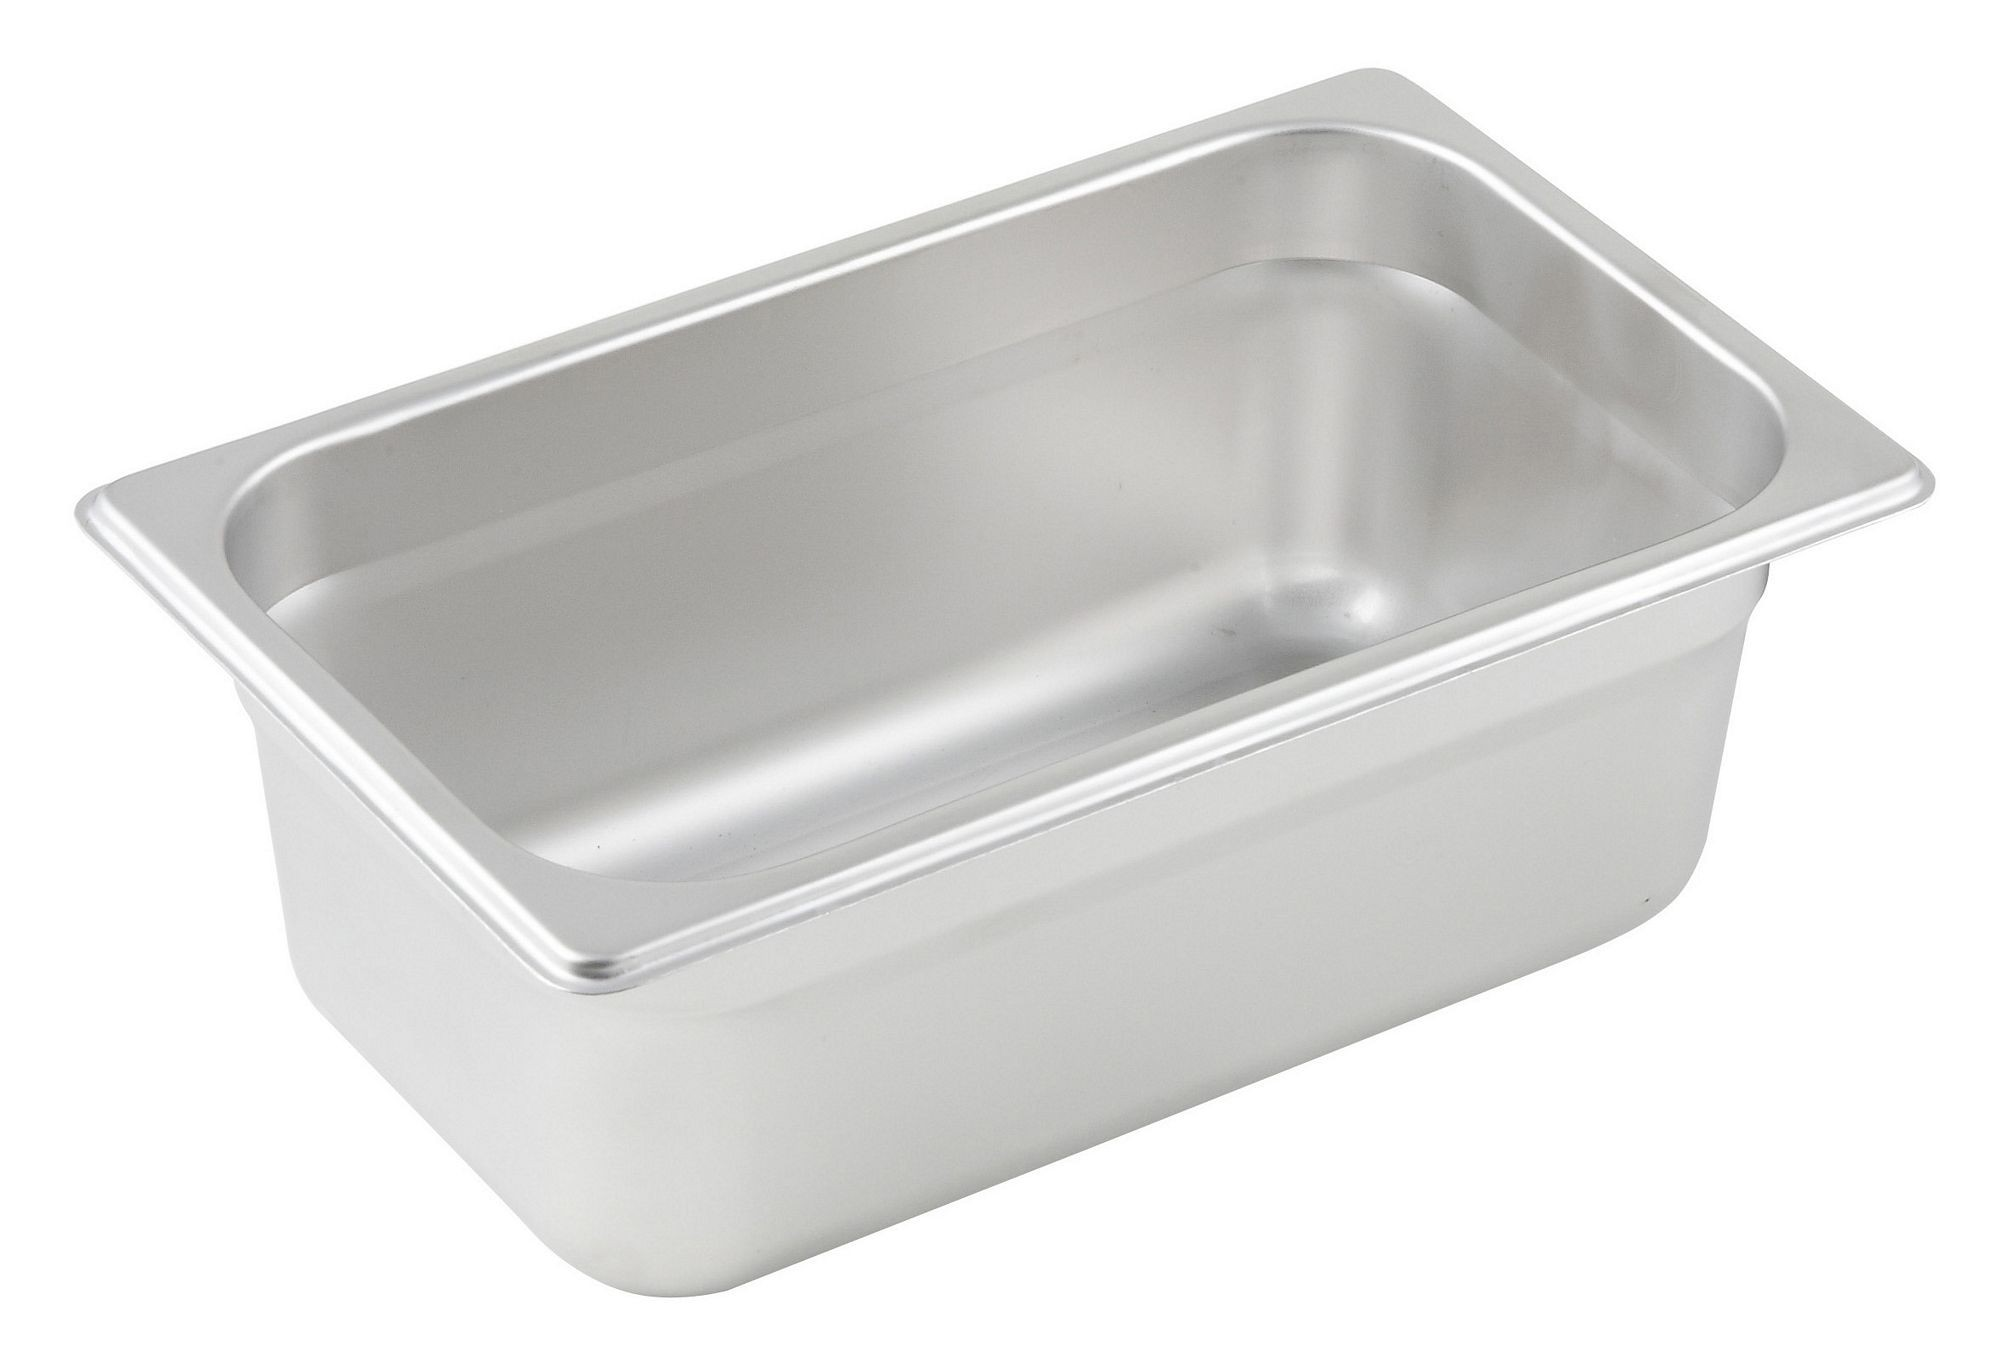 "Winco SPJP-404 1/4 Size Anti-Jam 23 Gauge Steam Table Pan 4"" Deep"